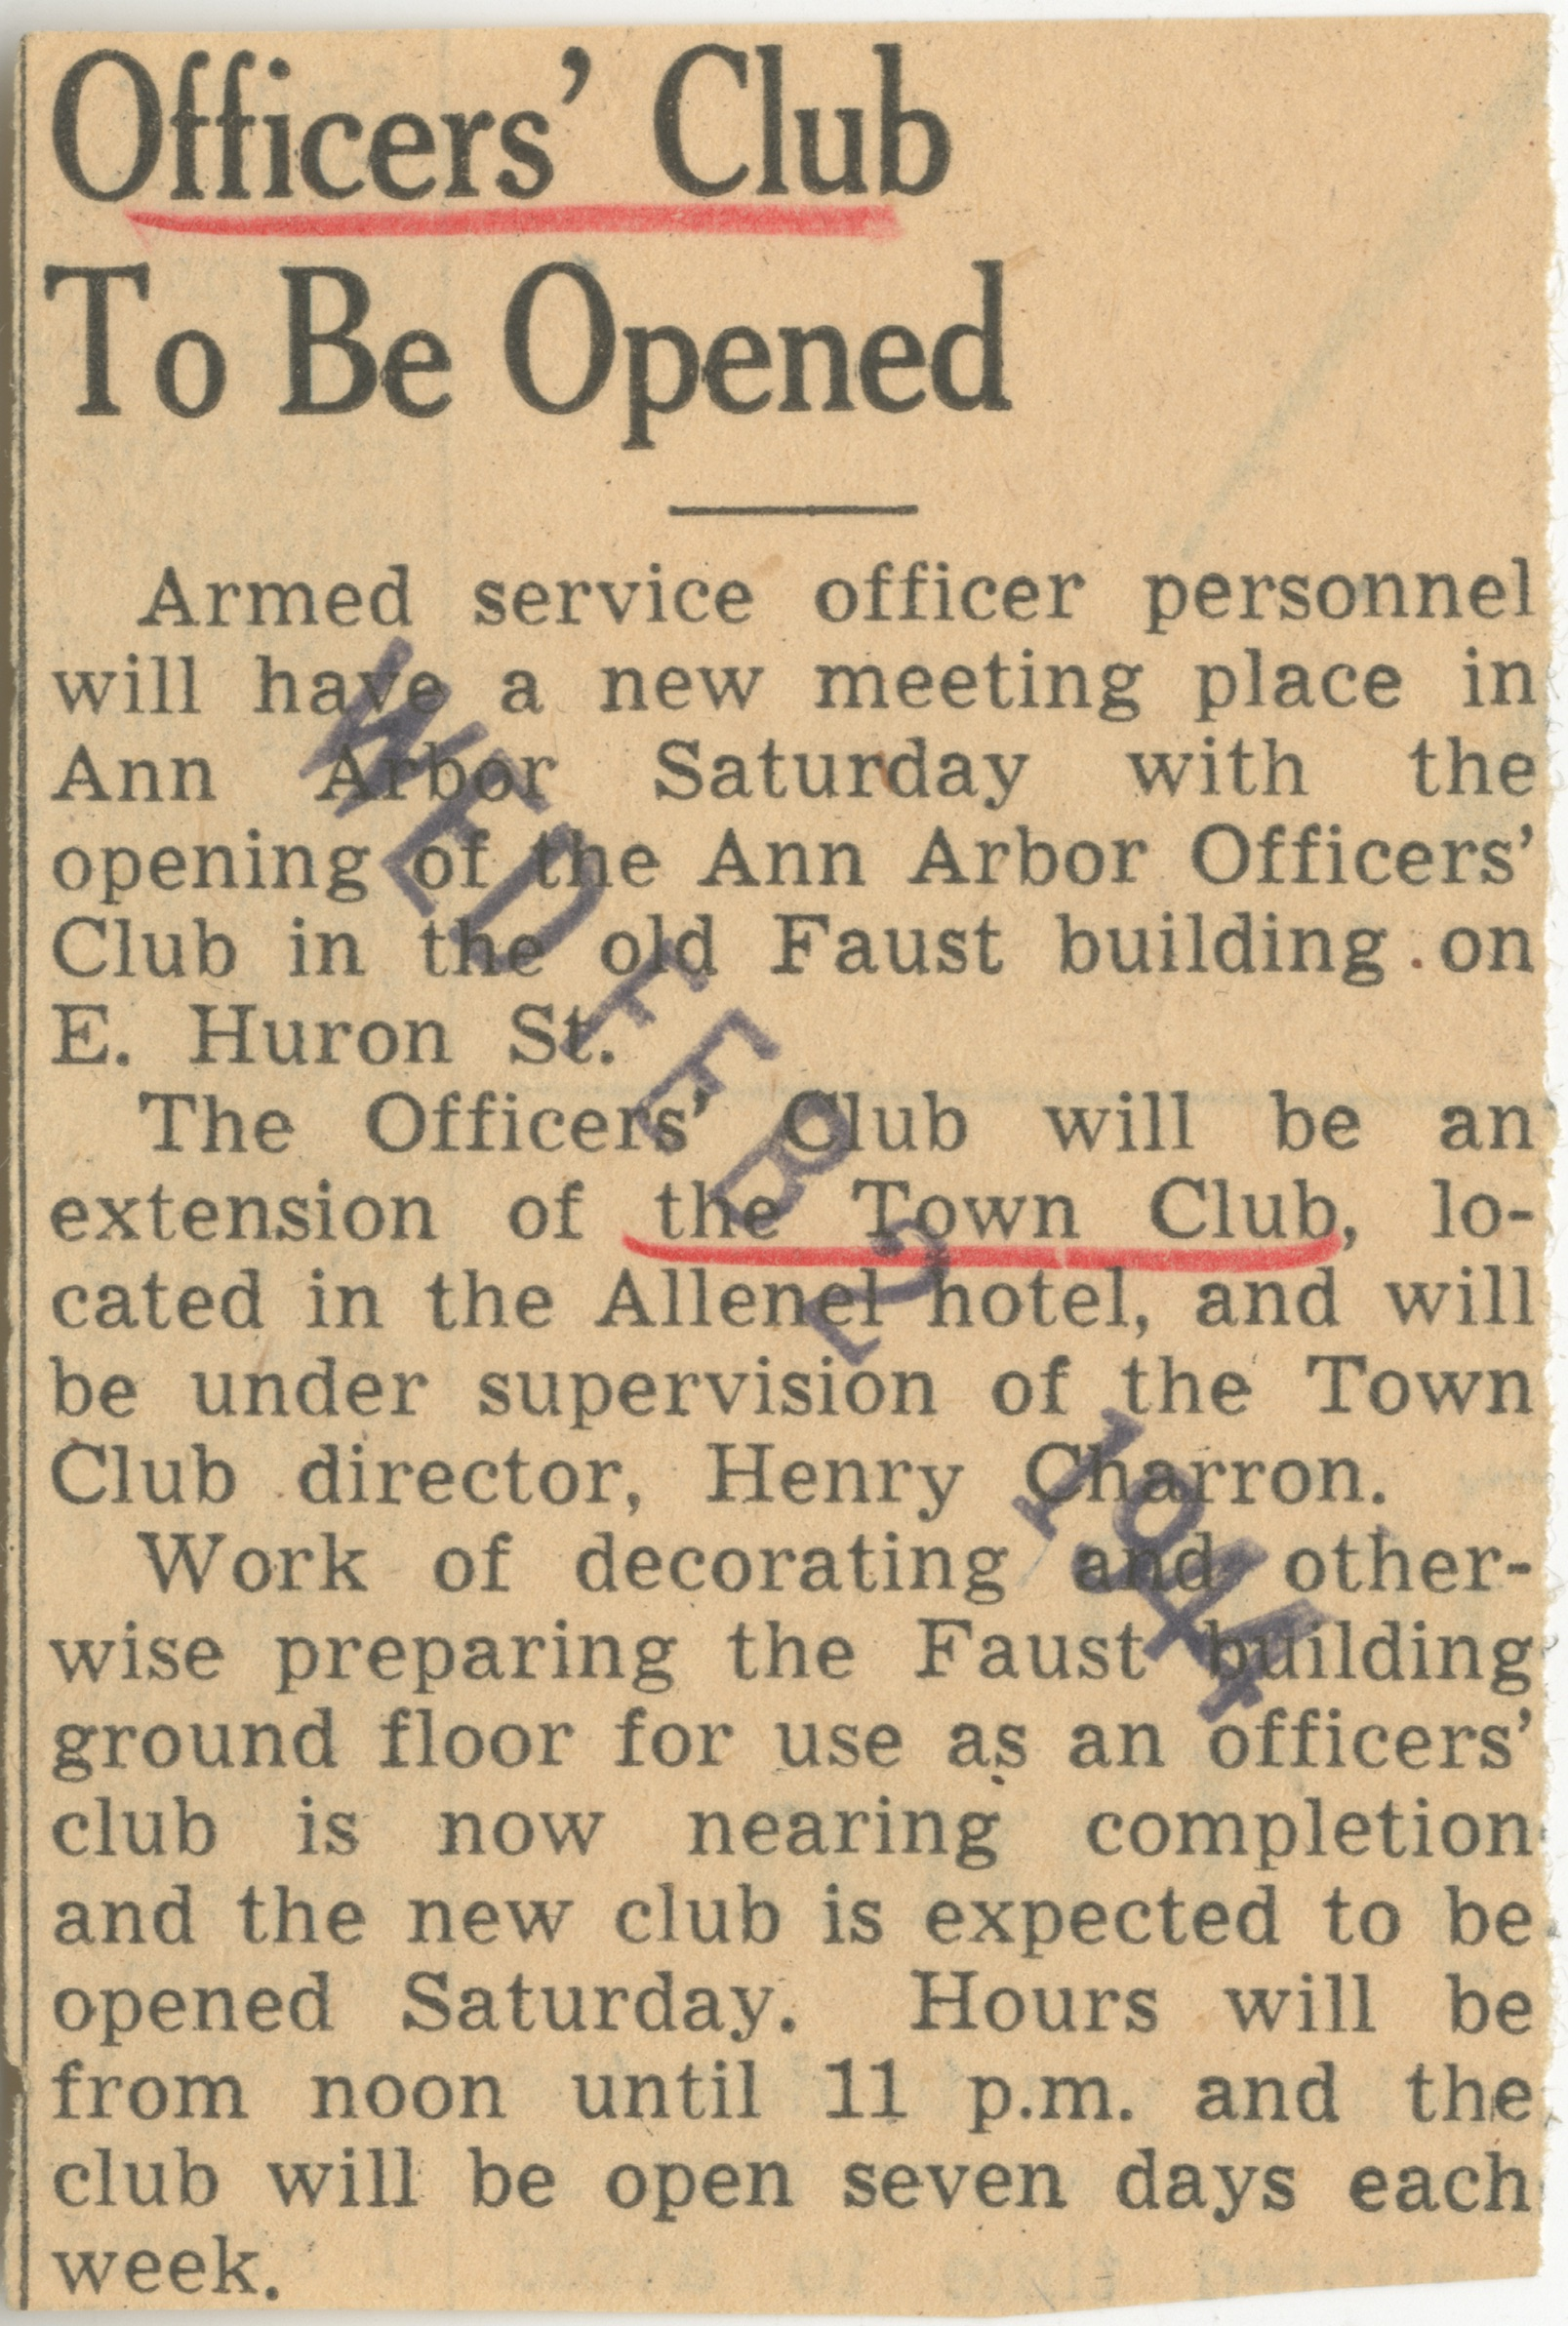 Officers' Club To Be Opened image